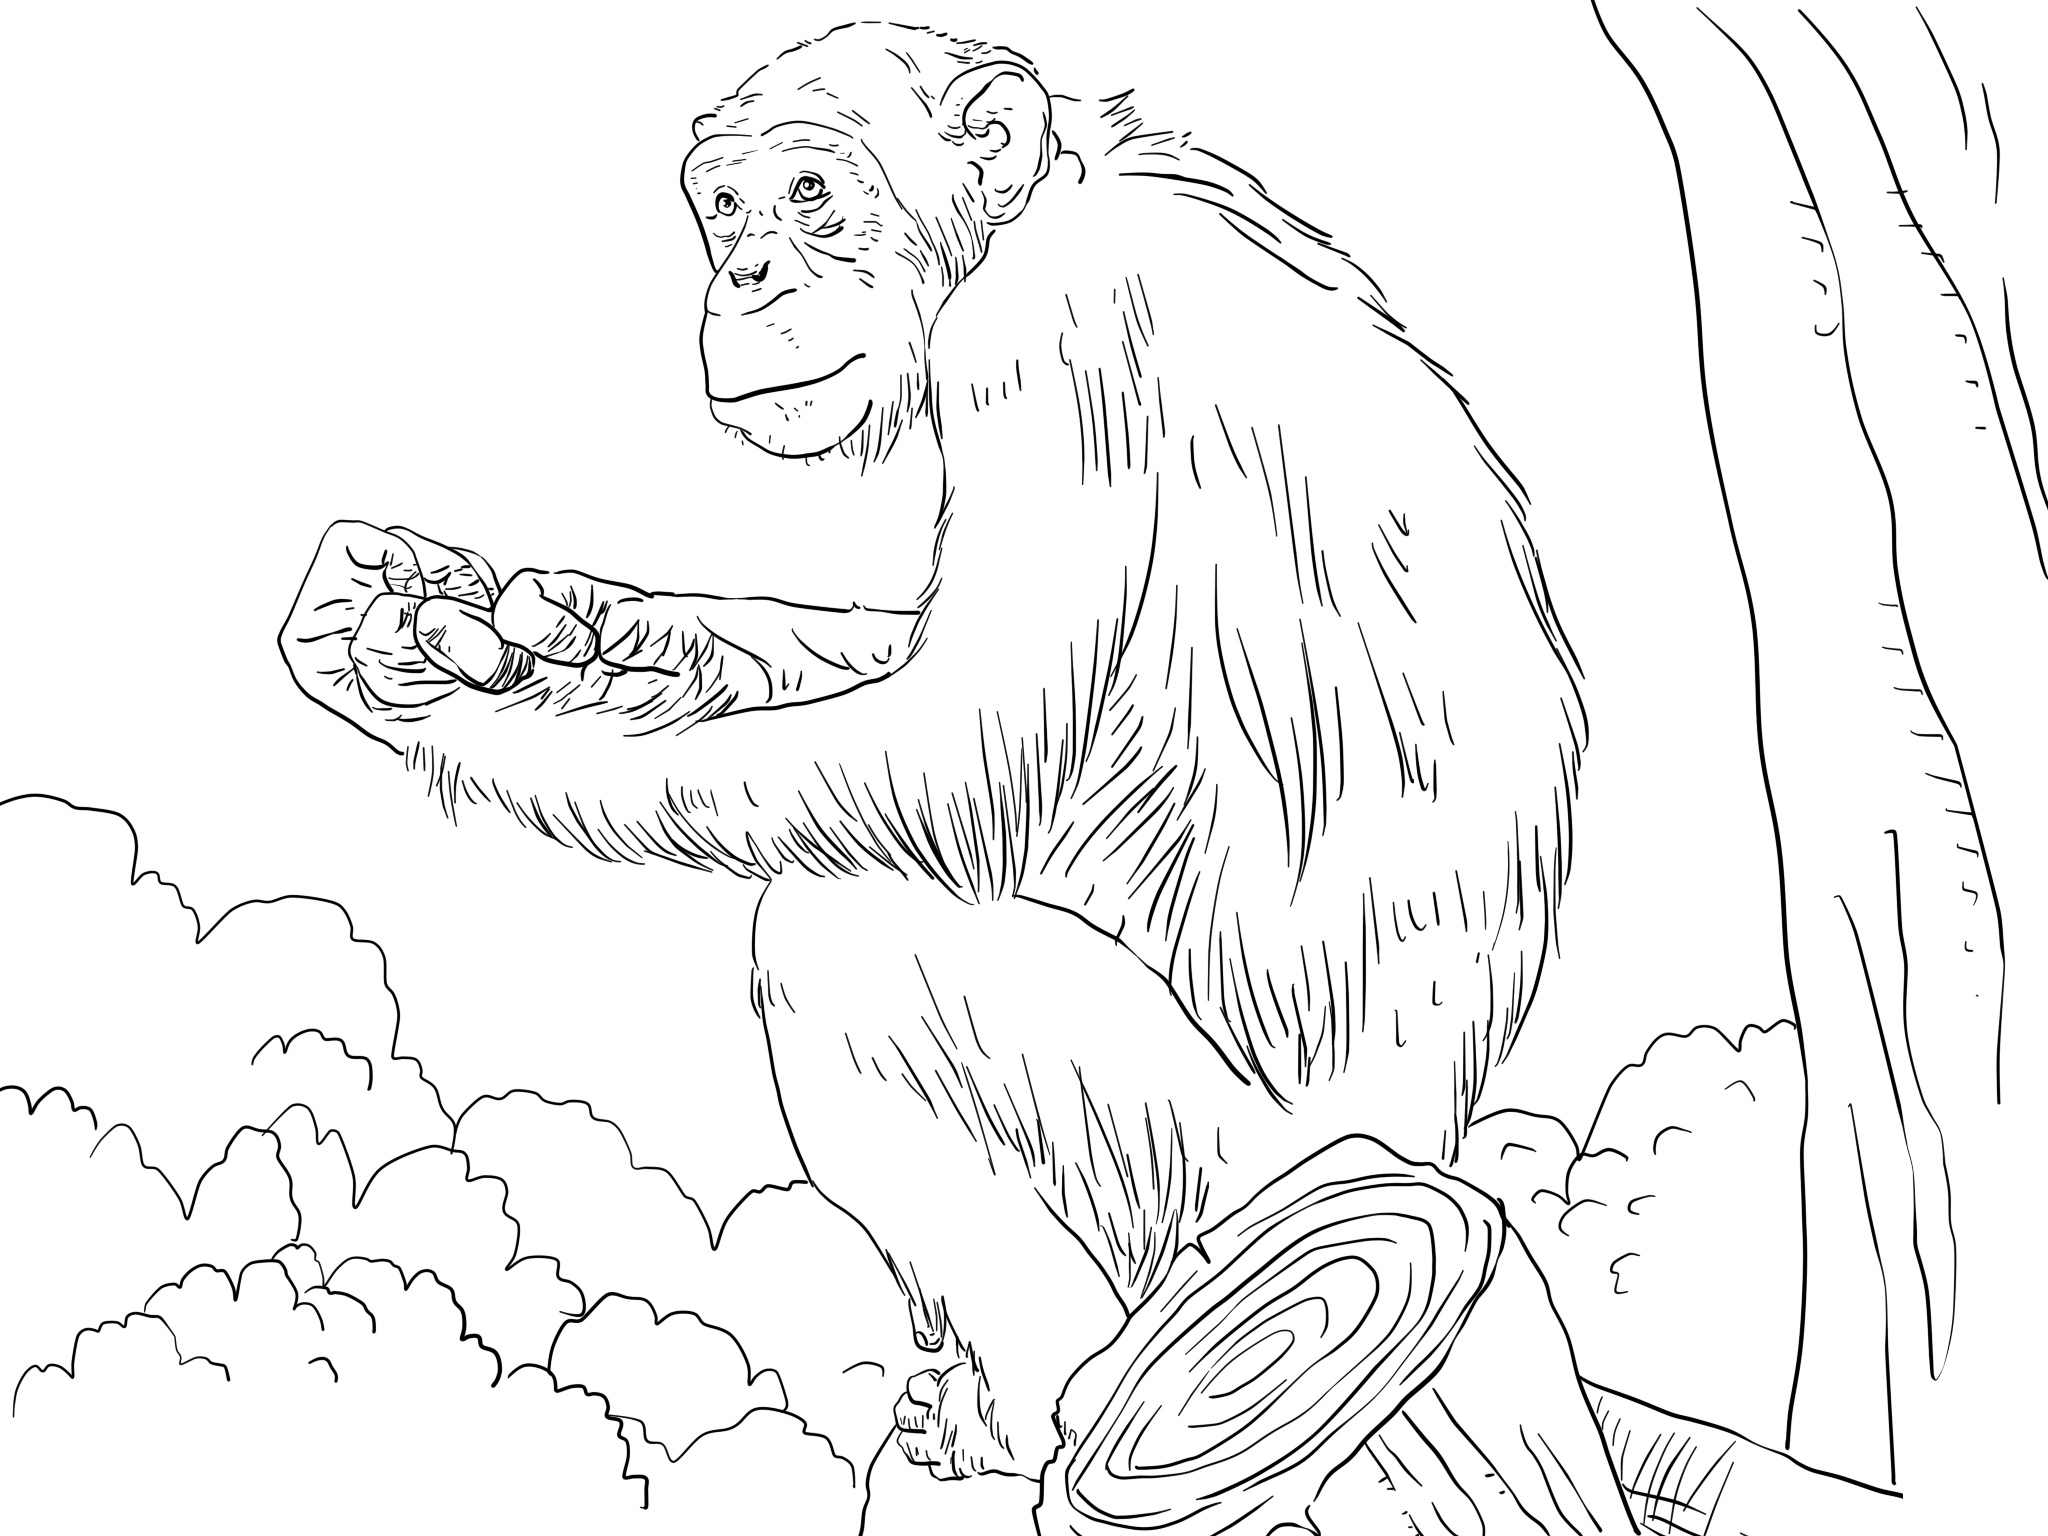 Free Printable Chimpanzee Coloring Pages For Kids Coloring Pages To Print Free